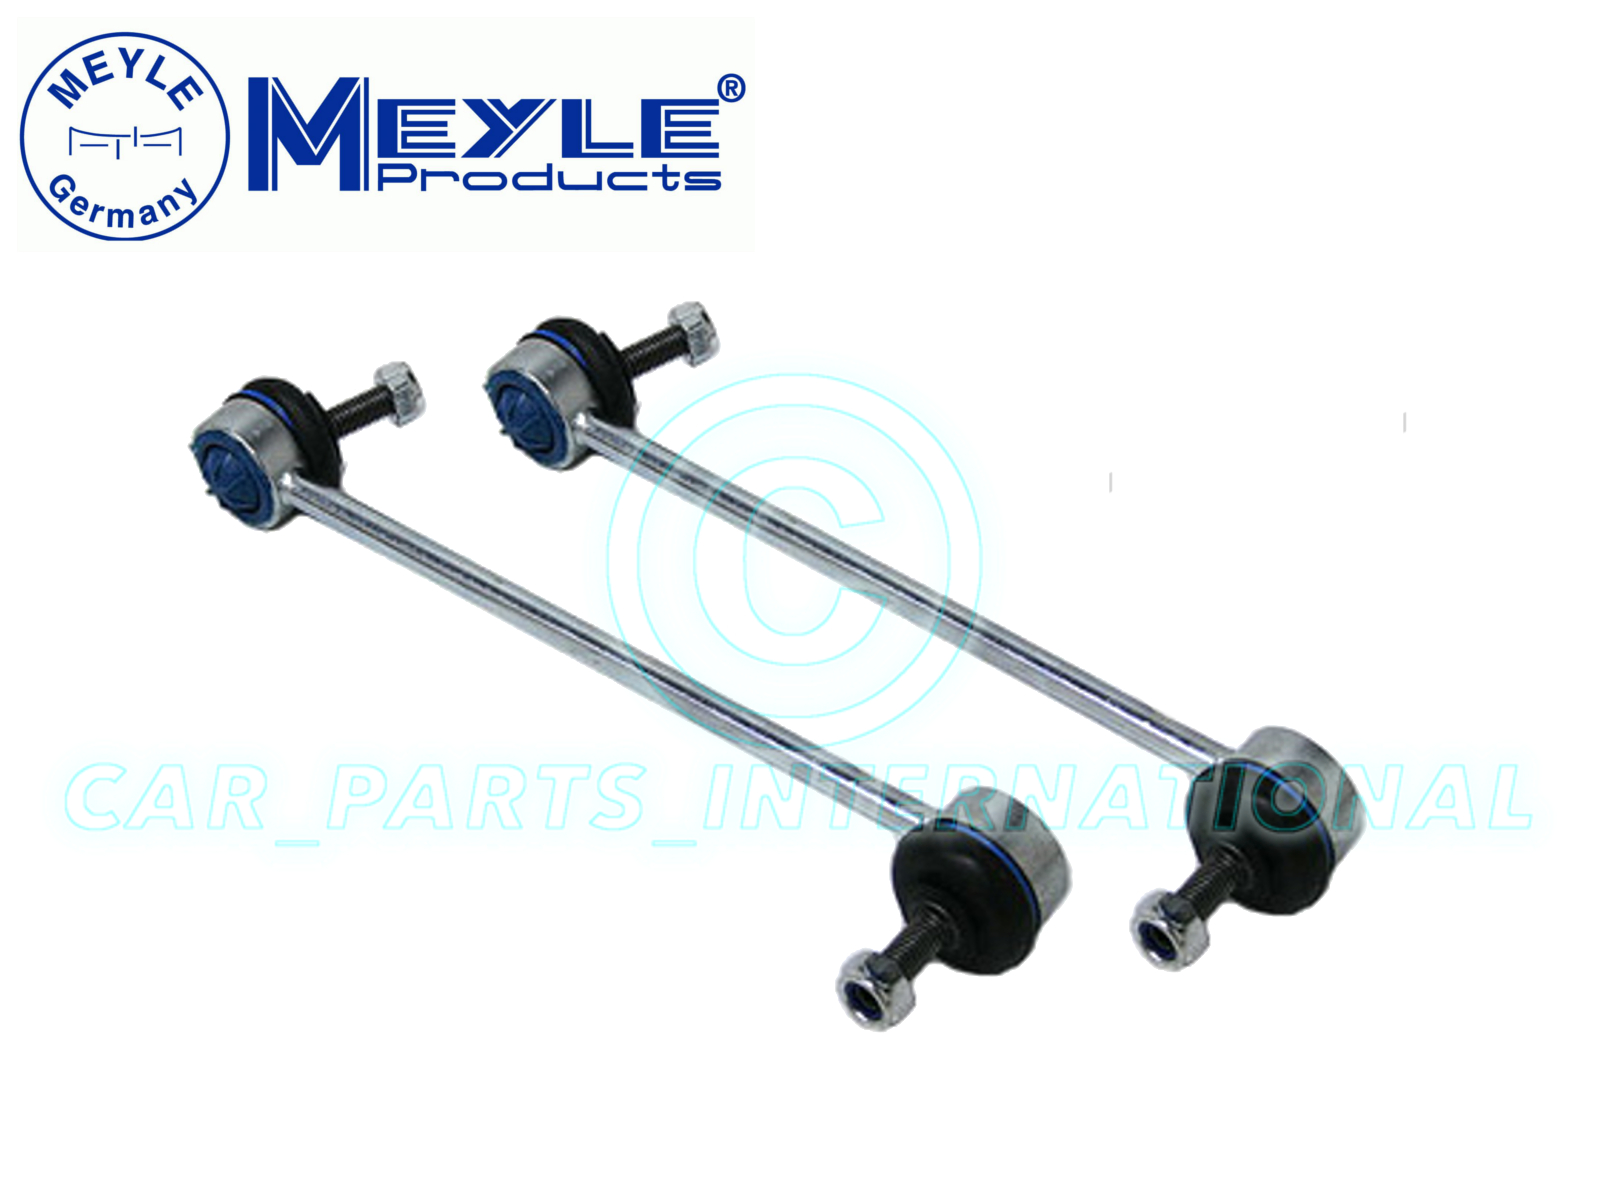 Front Anti-Roll Bar//Stabiliser Drop Links Pair. BMW 3 Series E46 All Models